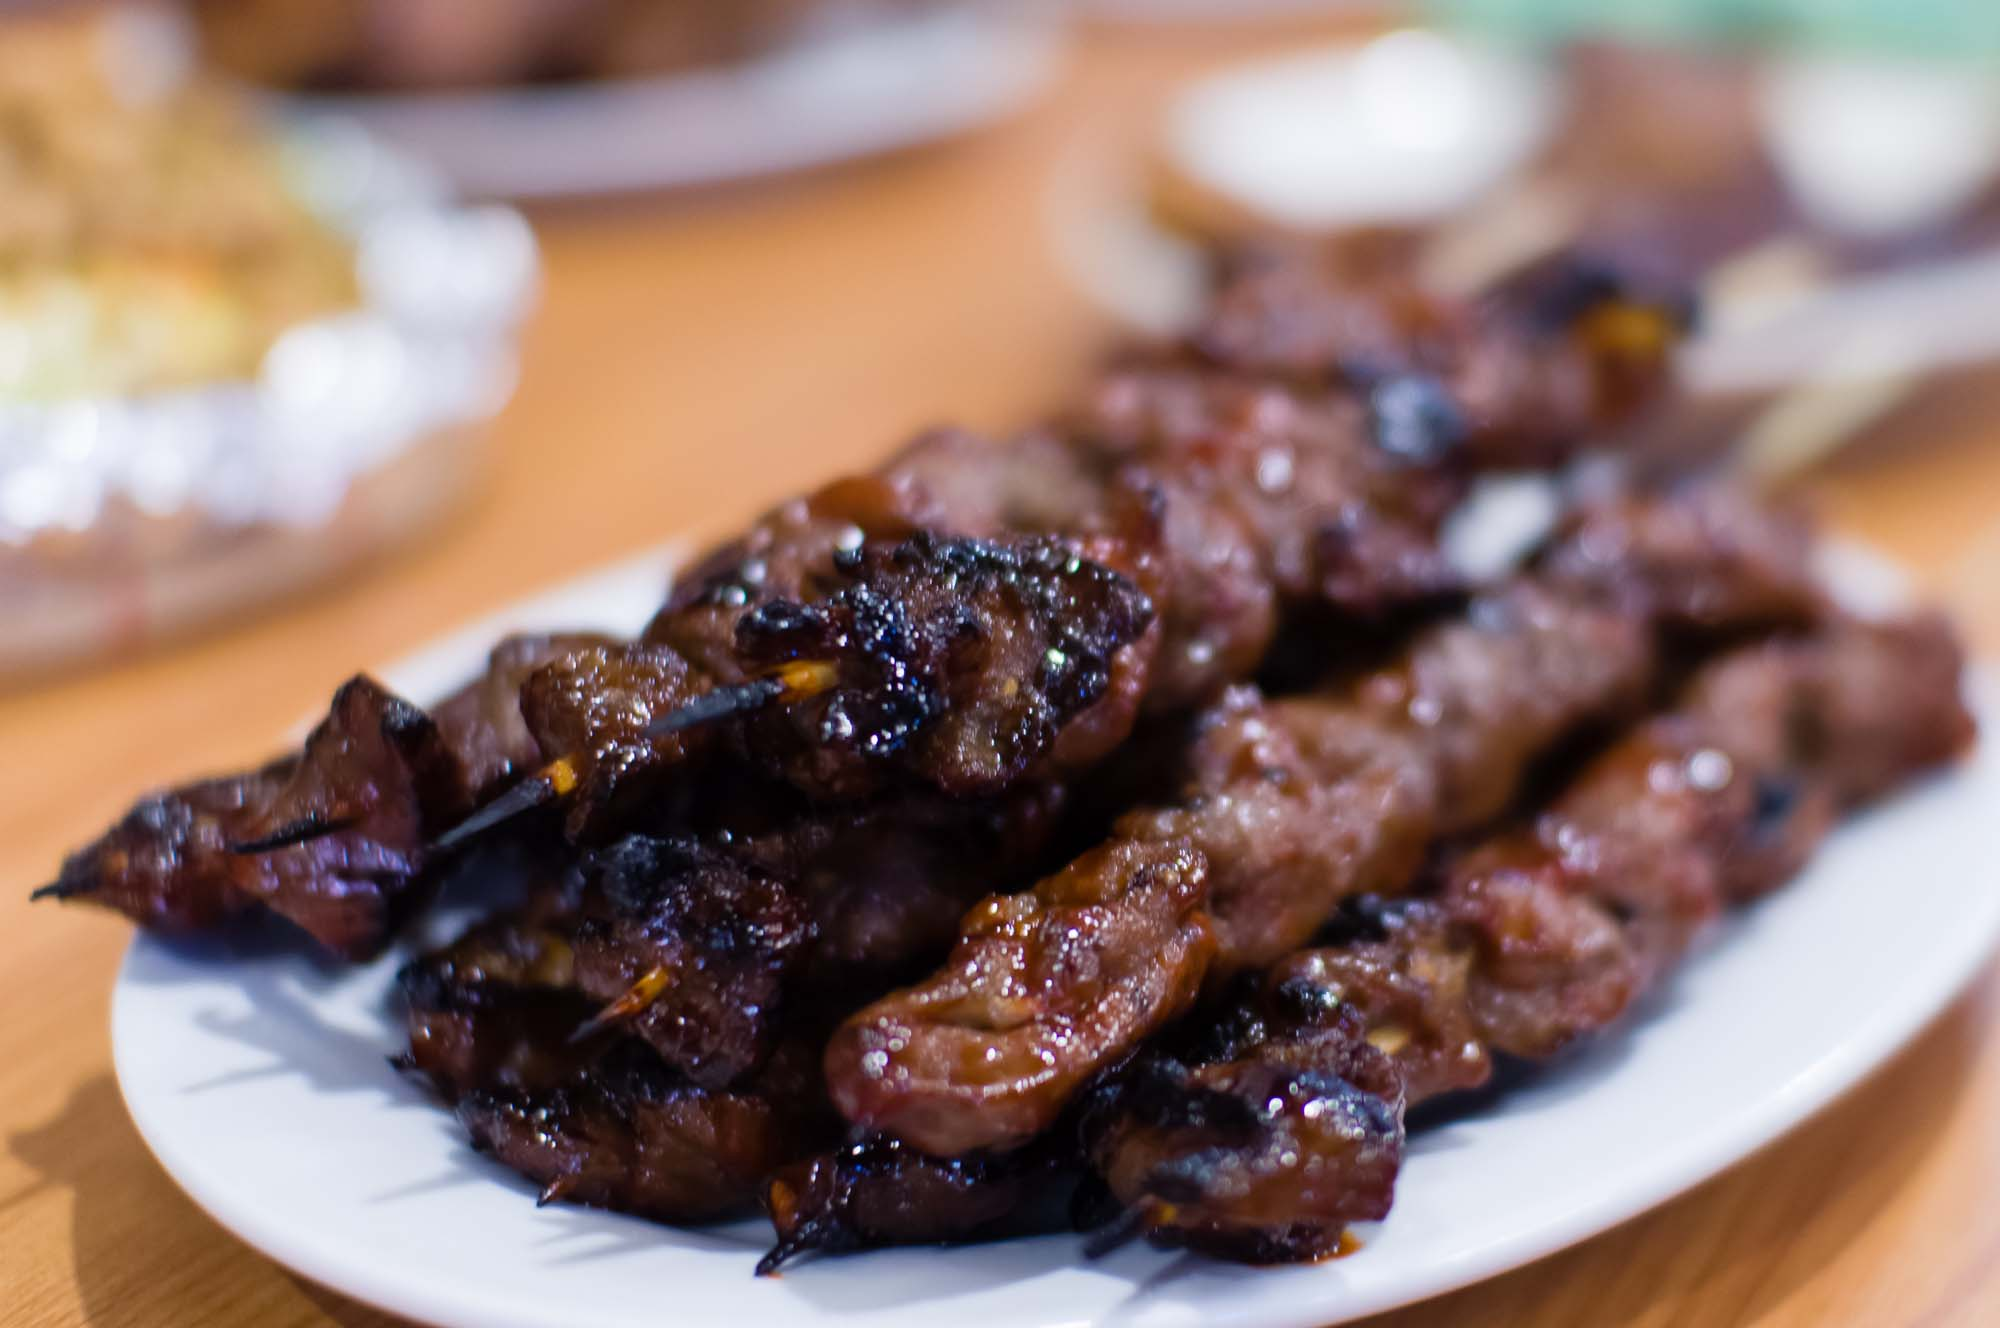 Pork Barbecue (PHP 48) at Three Sisters' Restaurant of Pasig